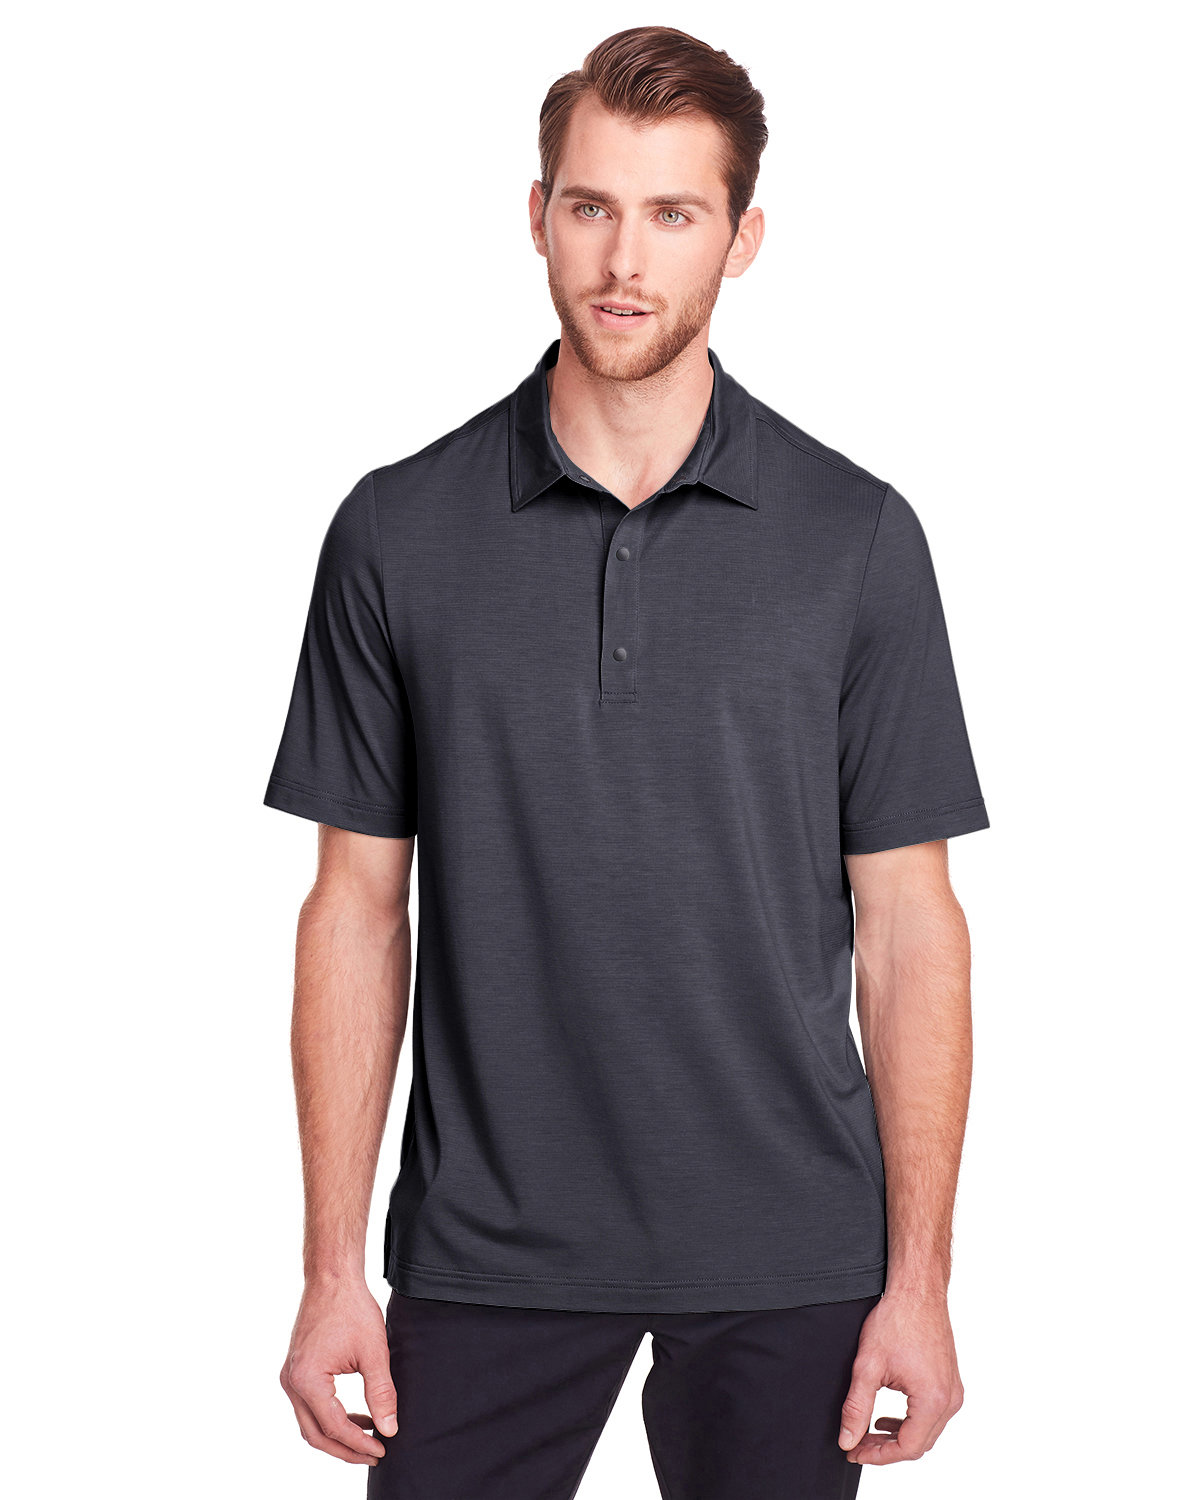 North End Men's Jaq Snap-Up Stretch Performance Polo CARBON